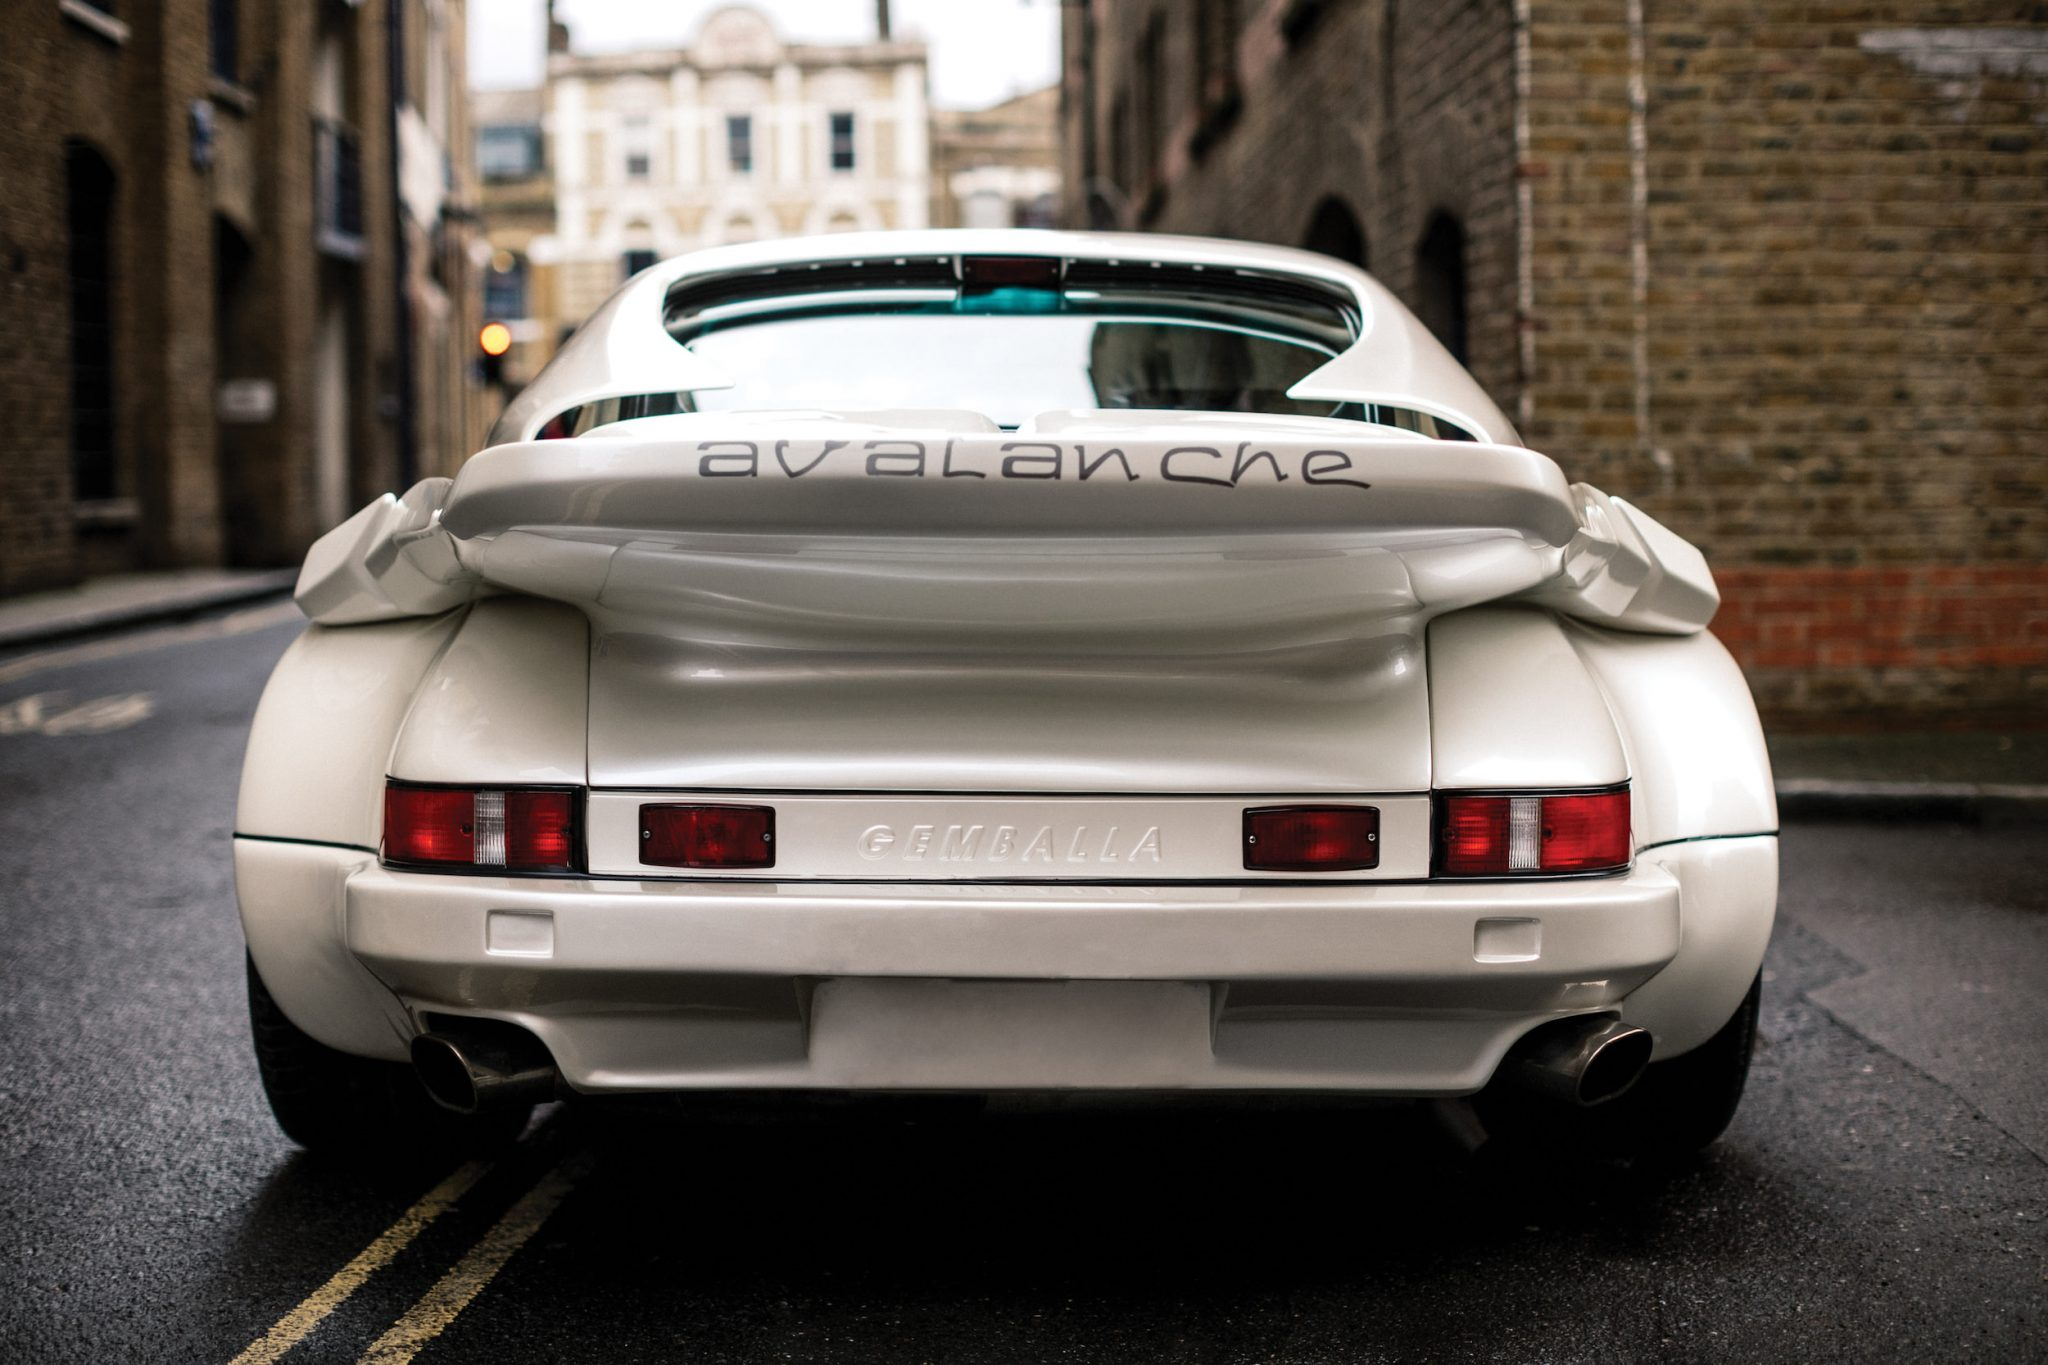 The Gemballa 930 Porsche Is A Time Machine Back To The 80's - Moto Networks